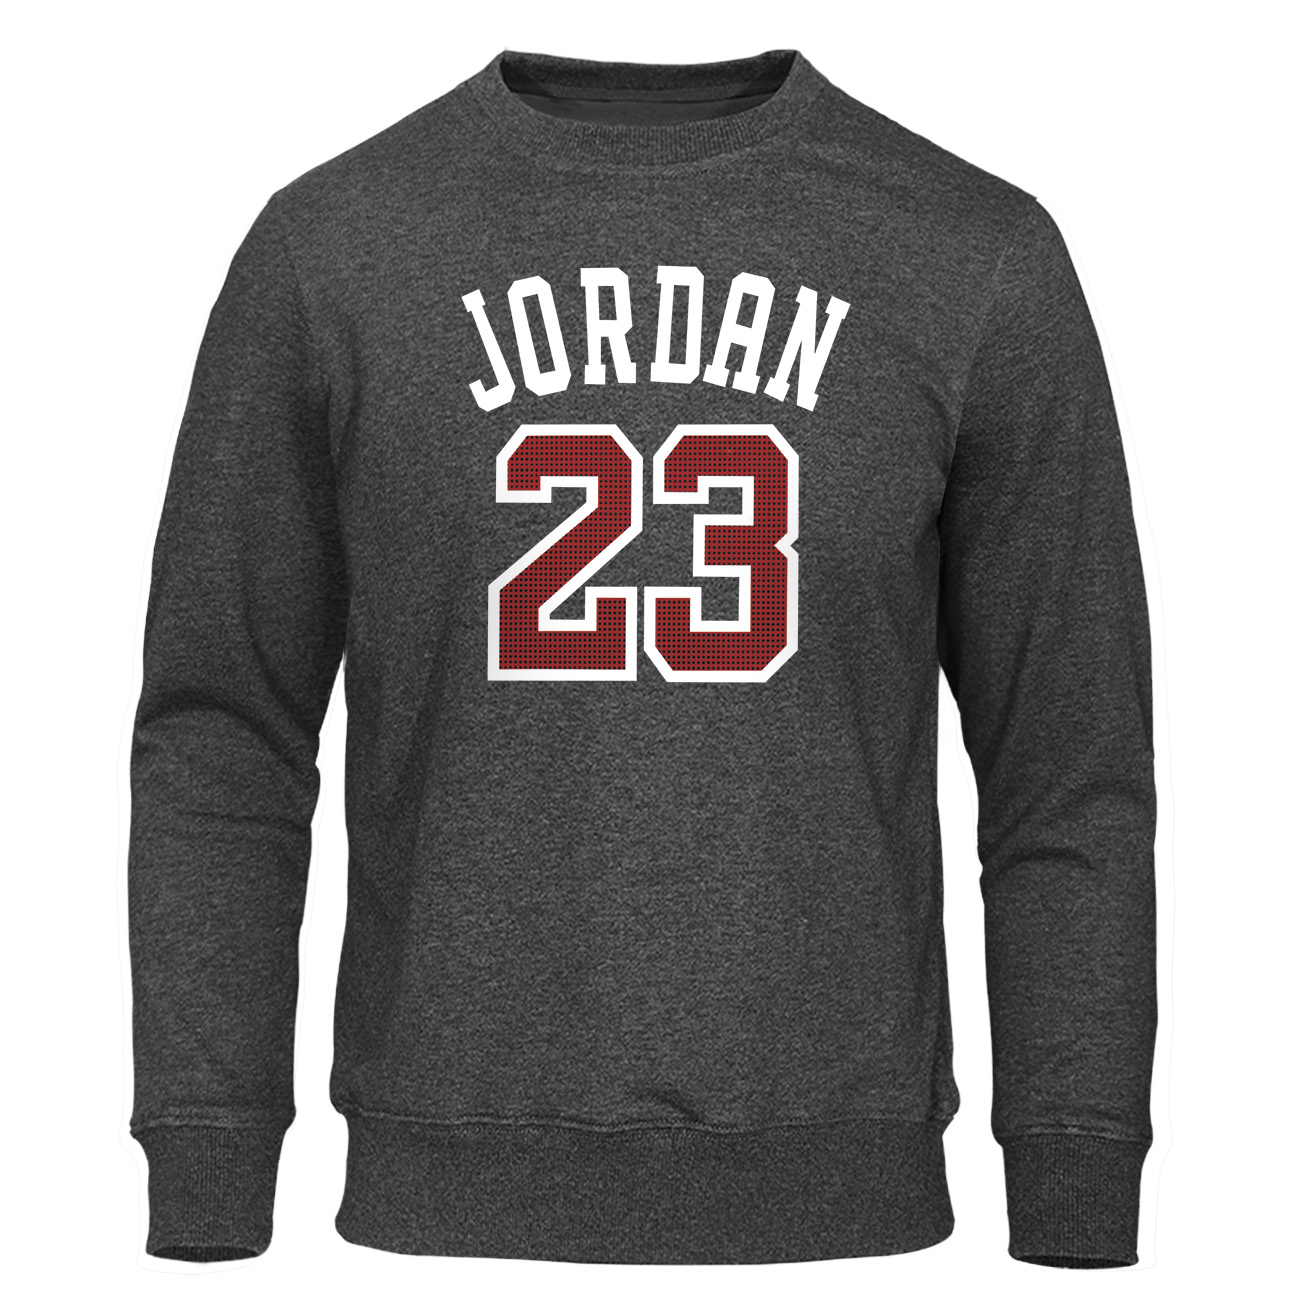 Men Hoodie Sweatshirt 2019 Spring Autumn New Hot Sale Tops Jordan 23 Print Streetwear Sweatshirts Mens Hoodies Hip Hop Pullovers